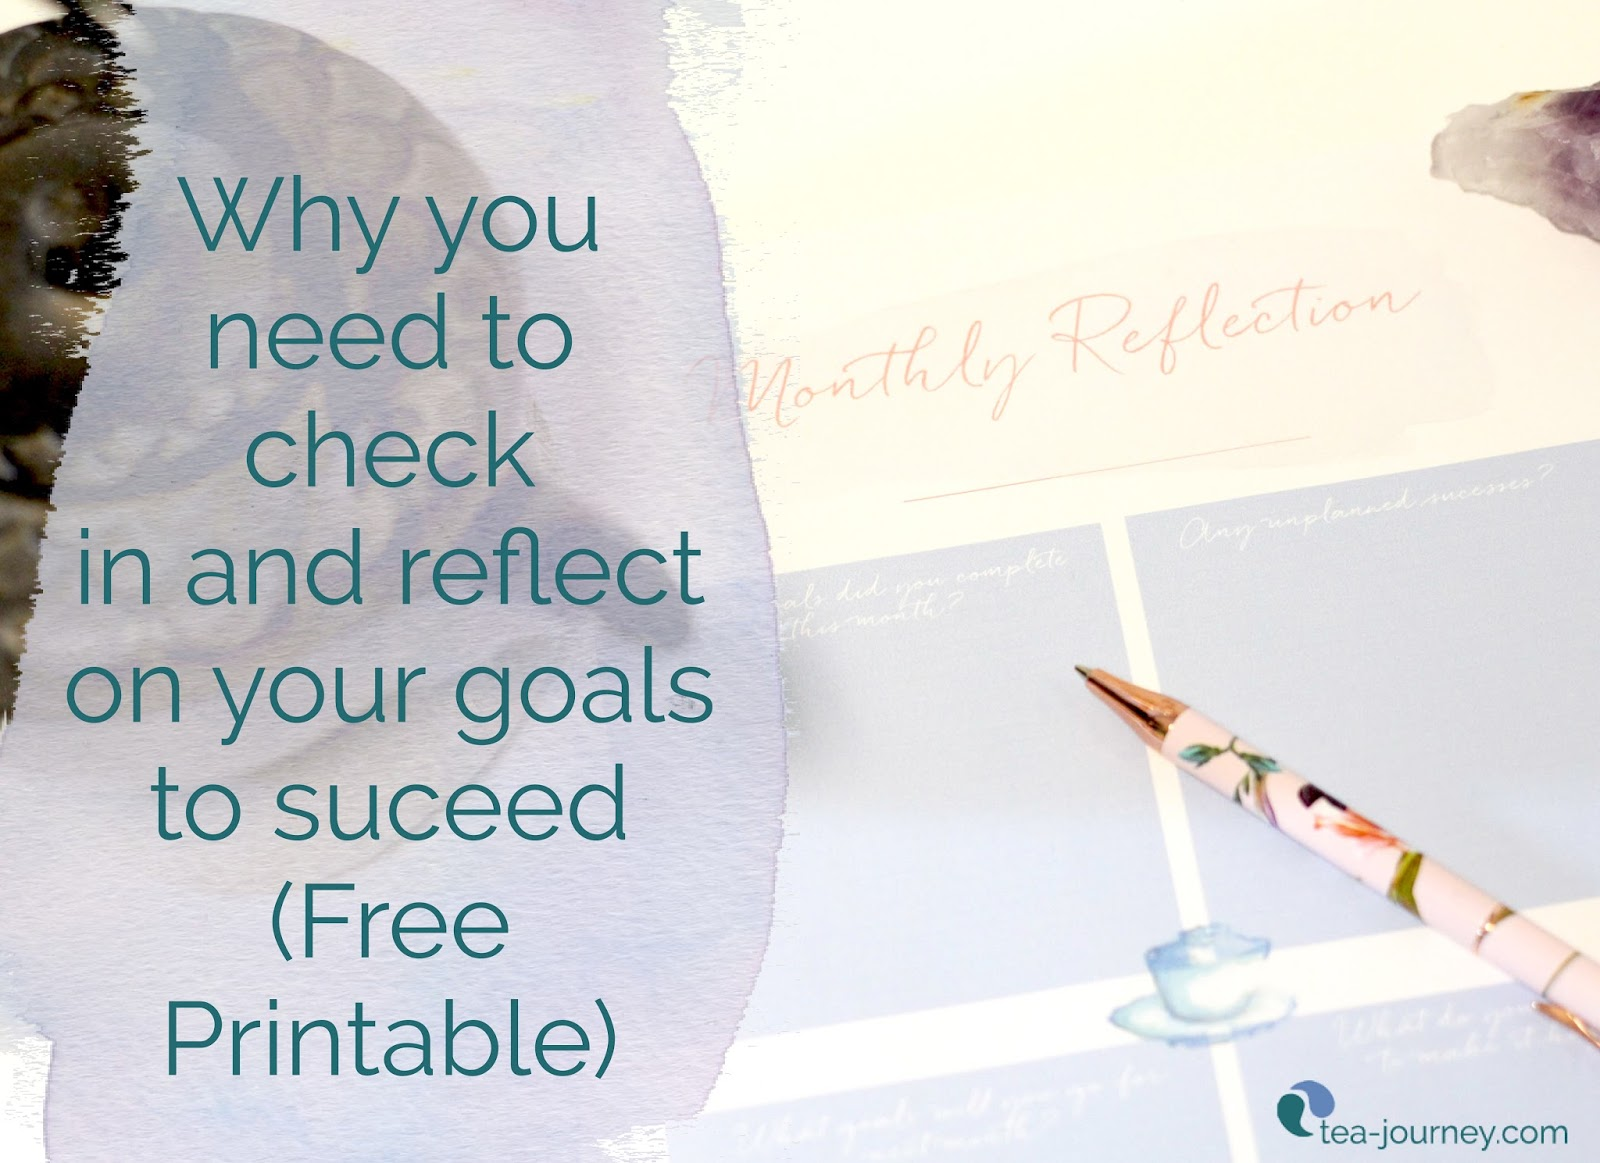 (Free Printable) Reflecting on your goals at regular intervals is important for reaching them. We will give you the questions to answer and why they are important.